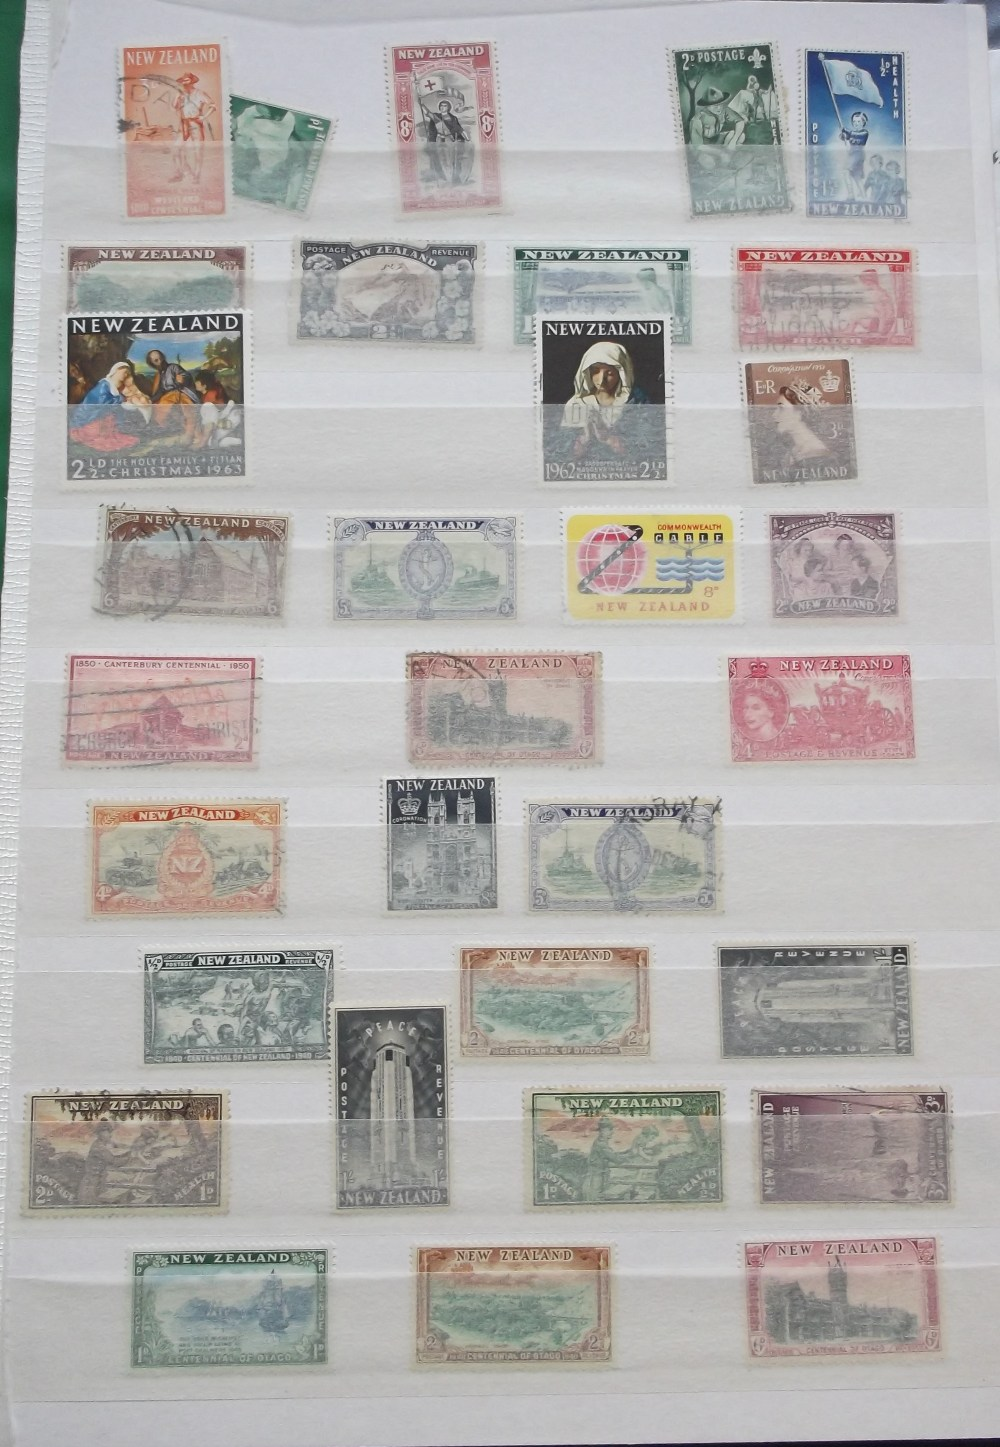 Lot 13 - Stamps, New Zealand, a collection of mint and used stamps in folder, mostly on stock album pages,